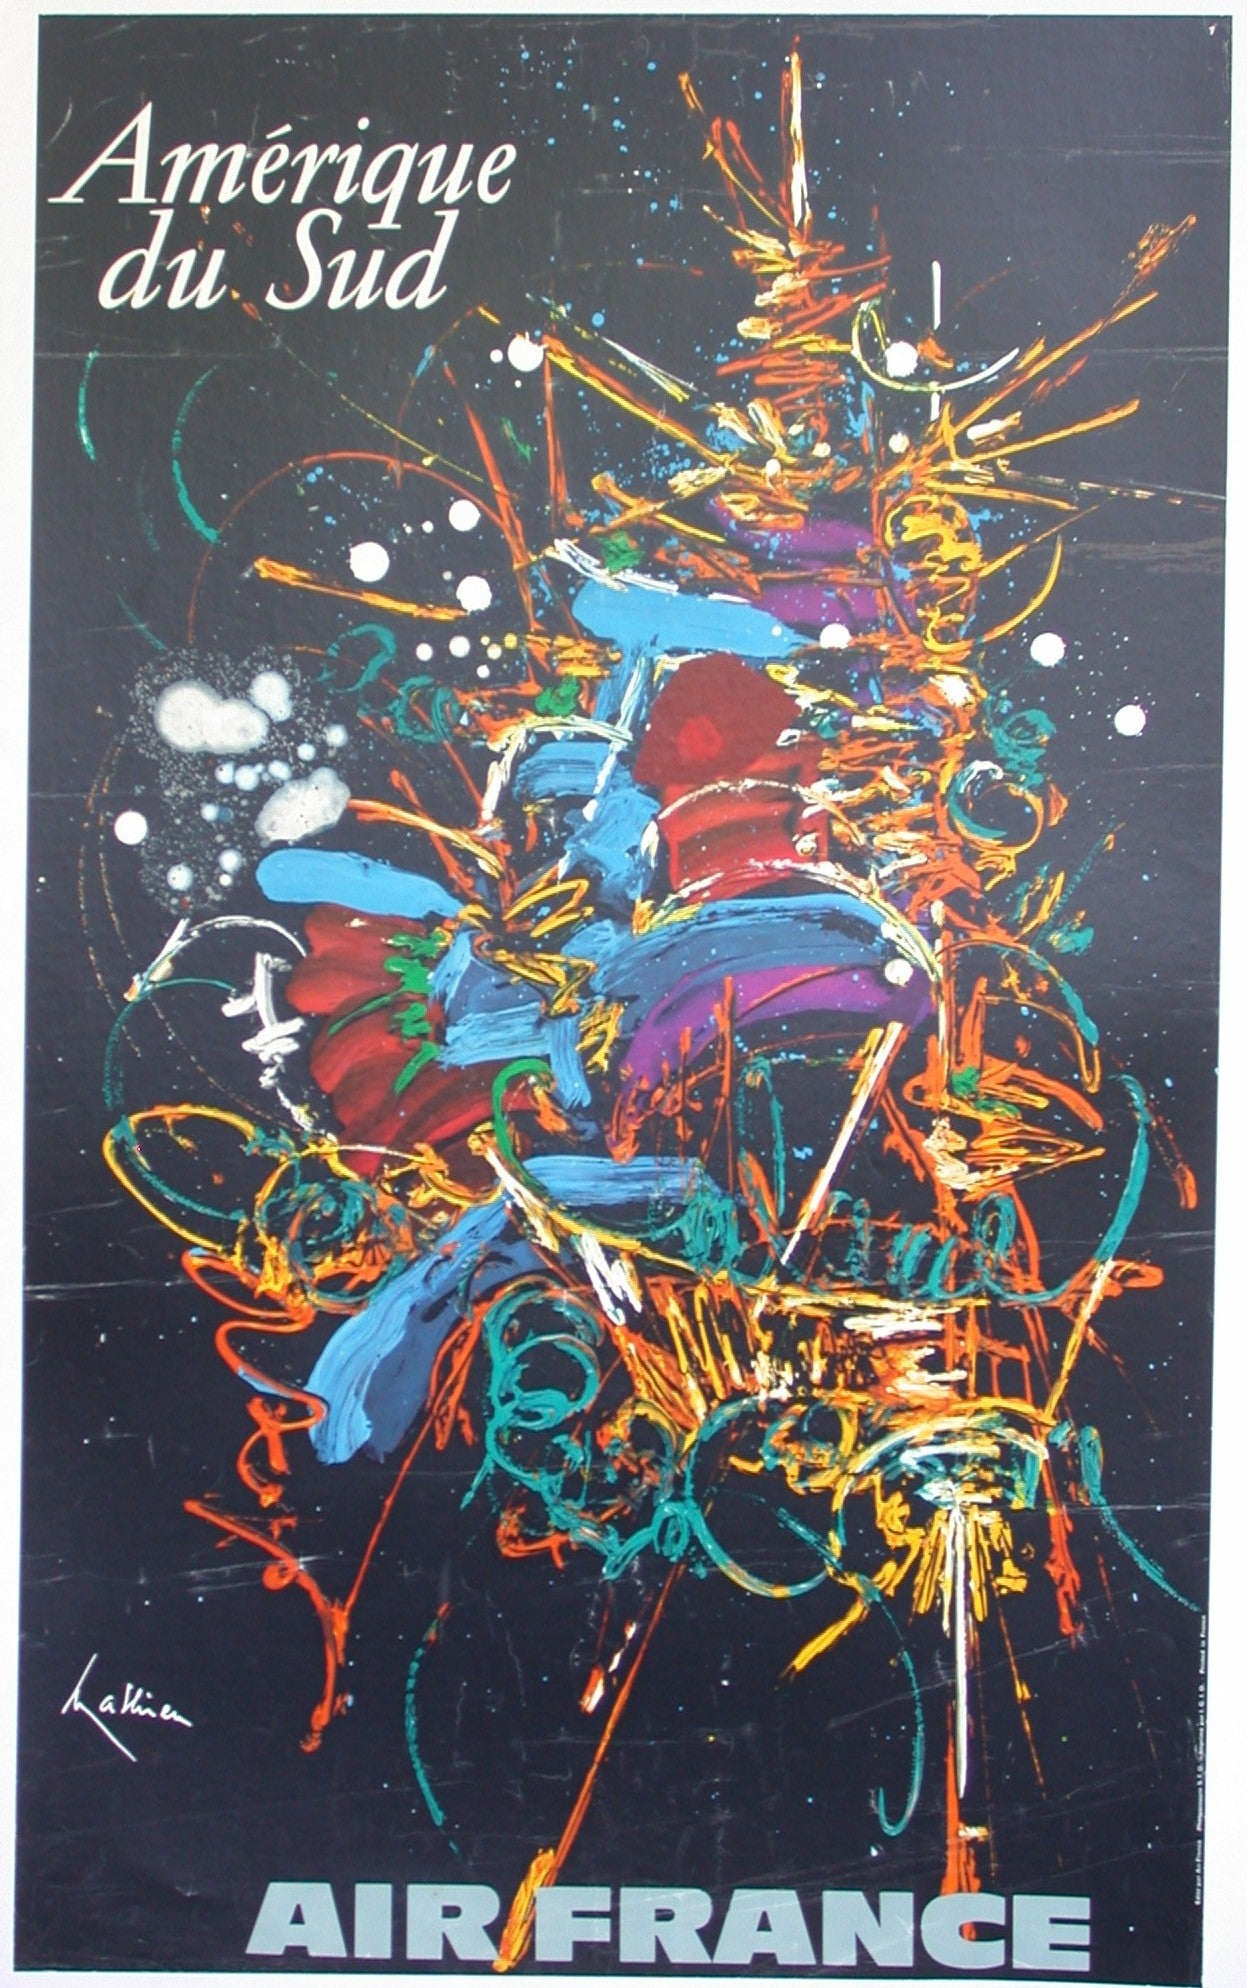 http://postermuseum.com/11111/1air/South.America.Mathieu.24x39.c.1965.$200.jpg